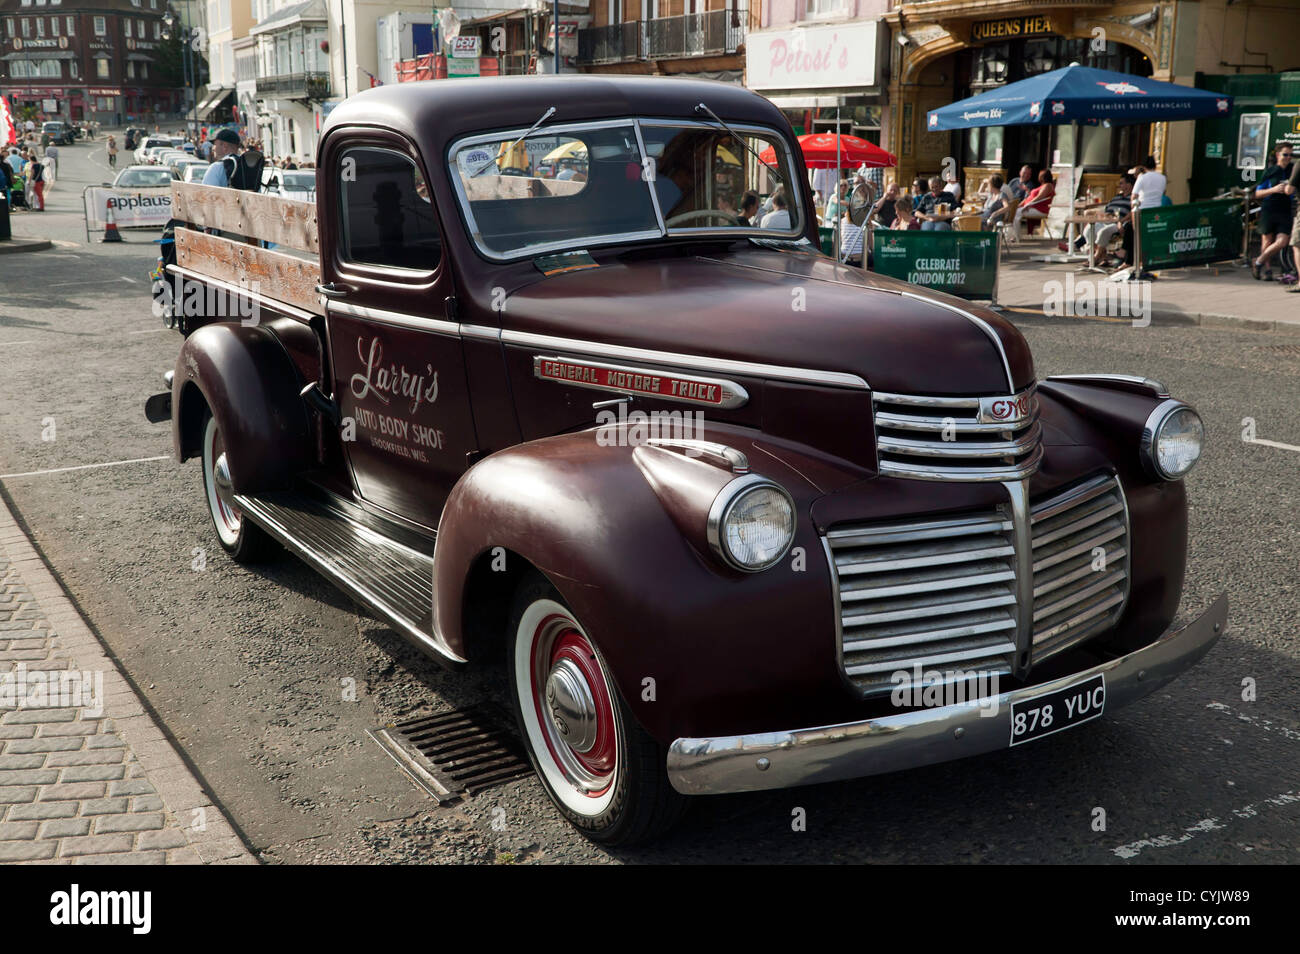 Vintage General Motors Truck on display at the Ramsgate 'Harbour Steam' day 2012 - Stock Image